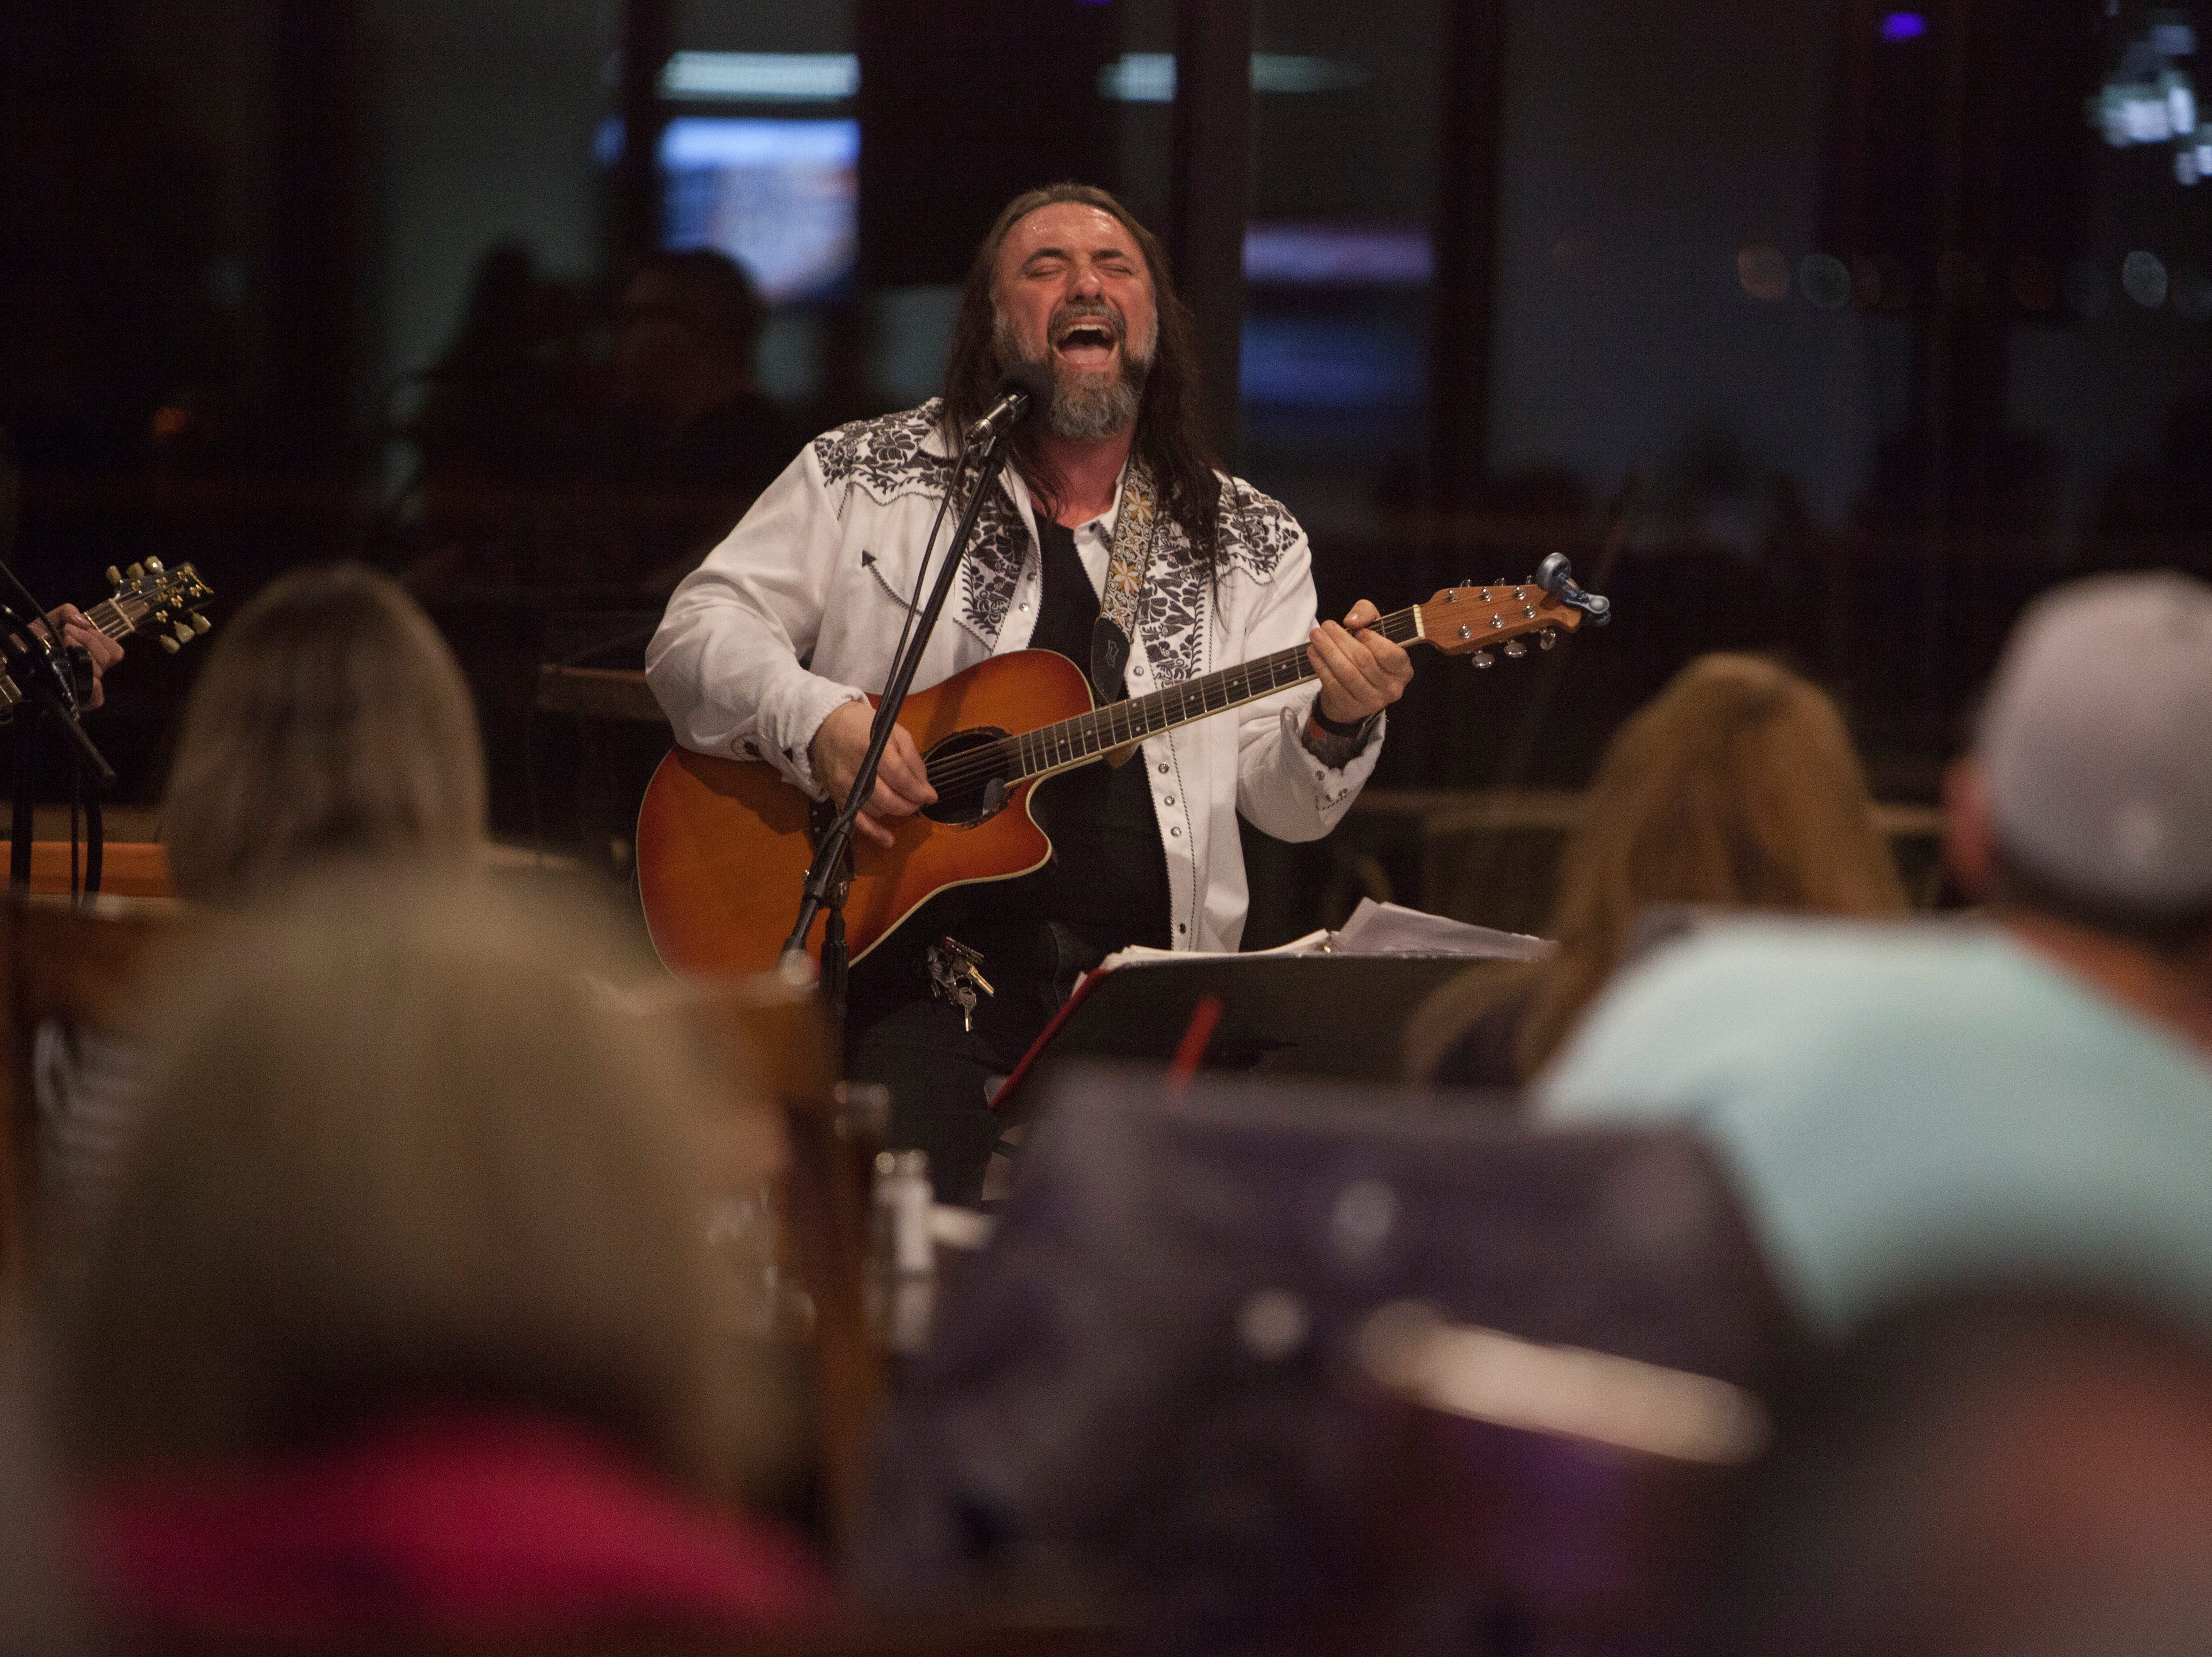 Raven Cain performs at the Sand Hollow Resort Saturday, Jan. 26, 2019.